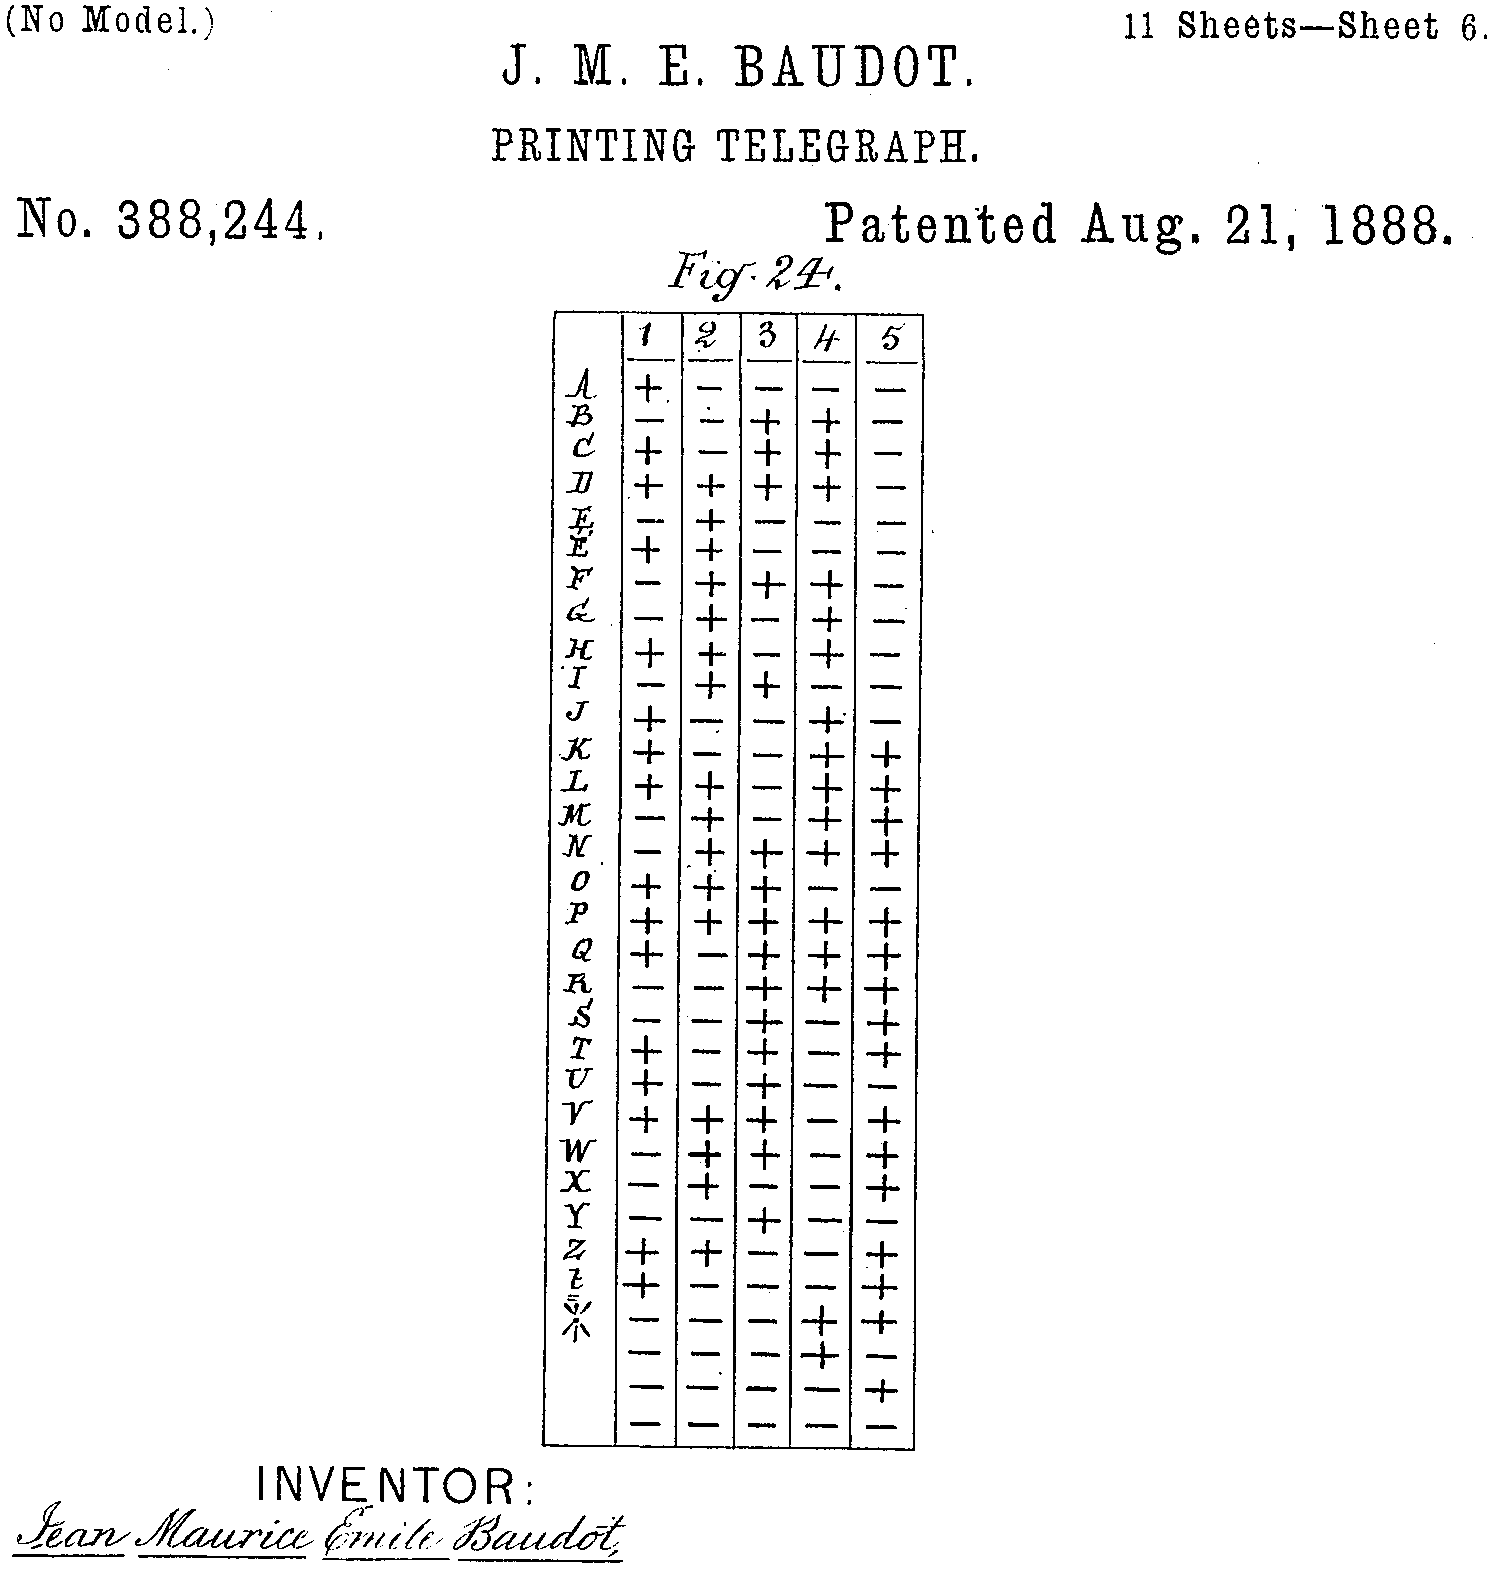 nearlyversionfromaudots1888patent,listingthrough,andlowastnbsprasure